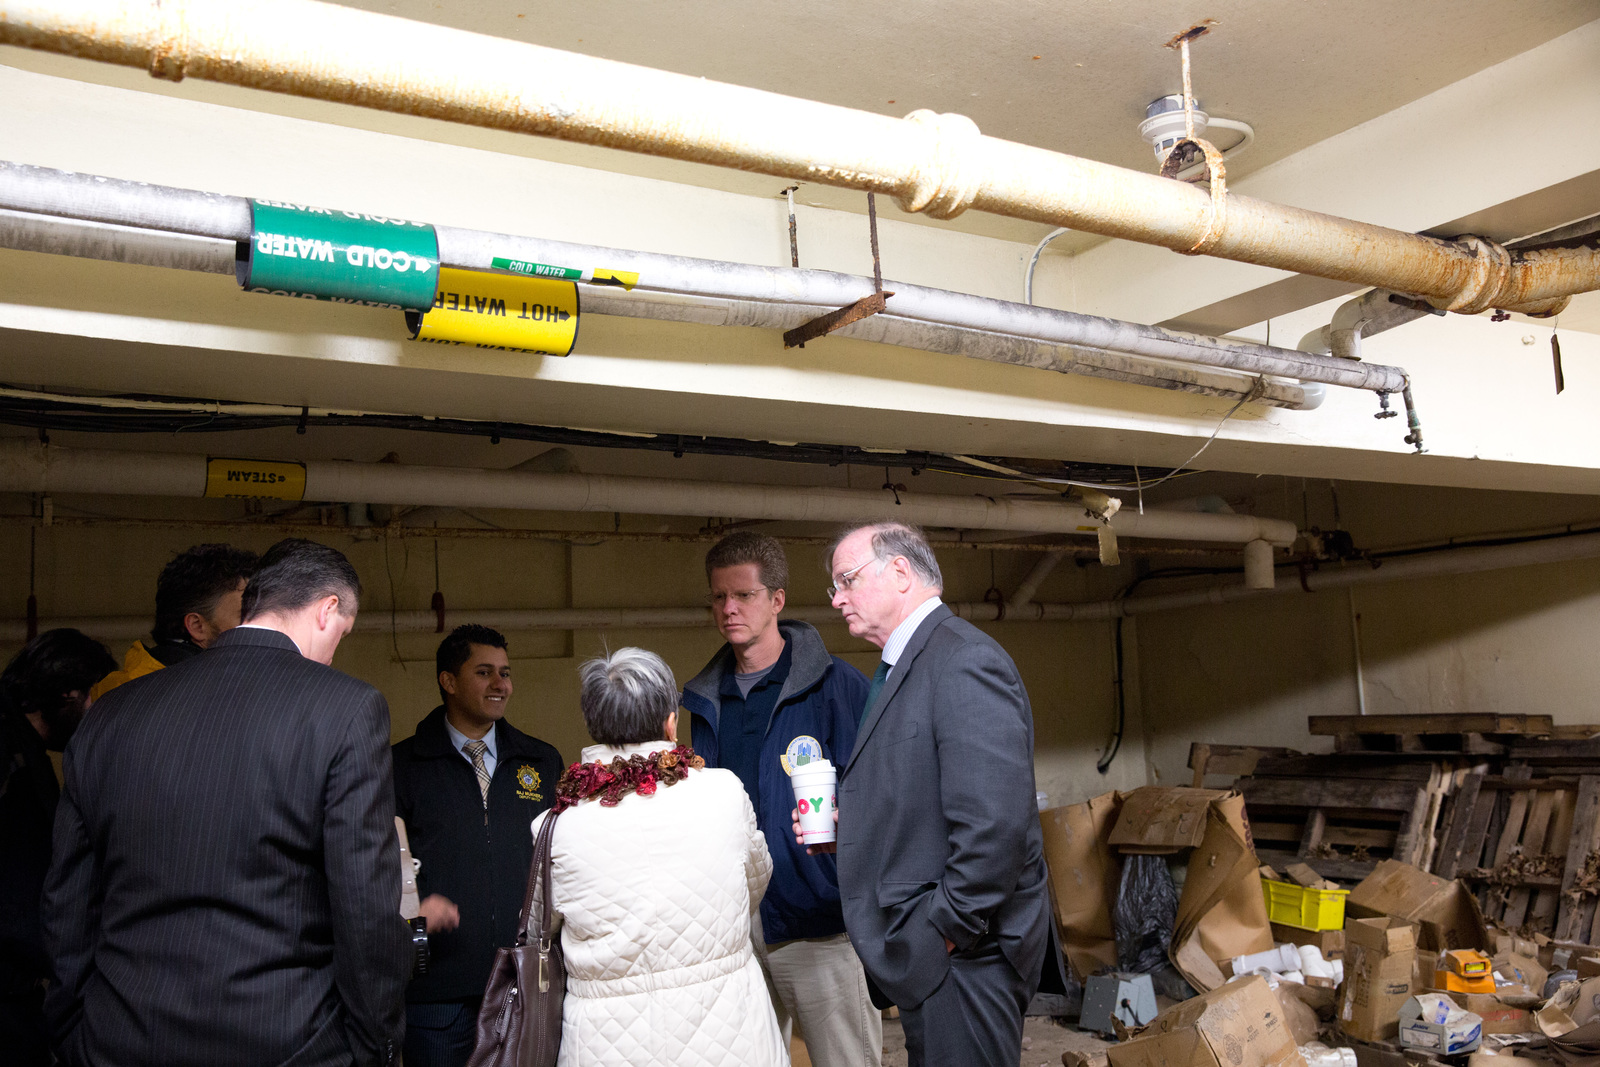 Secretary Shaun Donovan tours the Booker T. Washington Public Housing Complex,  to see Hurricane Sandy damage,  with Jersey City Mayor Jerramiah T. Healy in Jersey City, New Jersey.  Other participants include Jersey City Deputy Mayor Raj Mukherji,  Jersey City Housing Authority Executive Director Maria Maio,  Jersey City Police Chief Thomas Comey,  and residents of the Booker T. Washington Public Housing Complex.